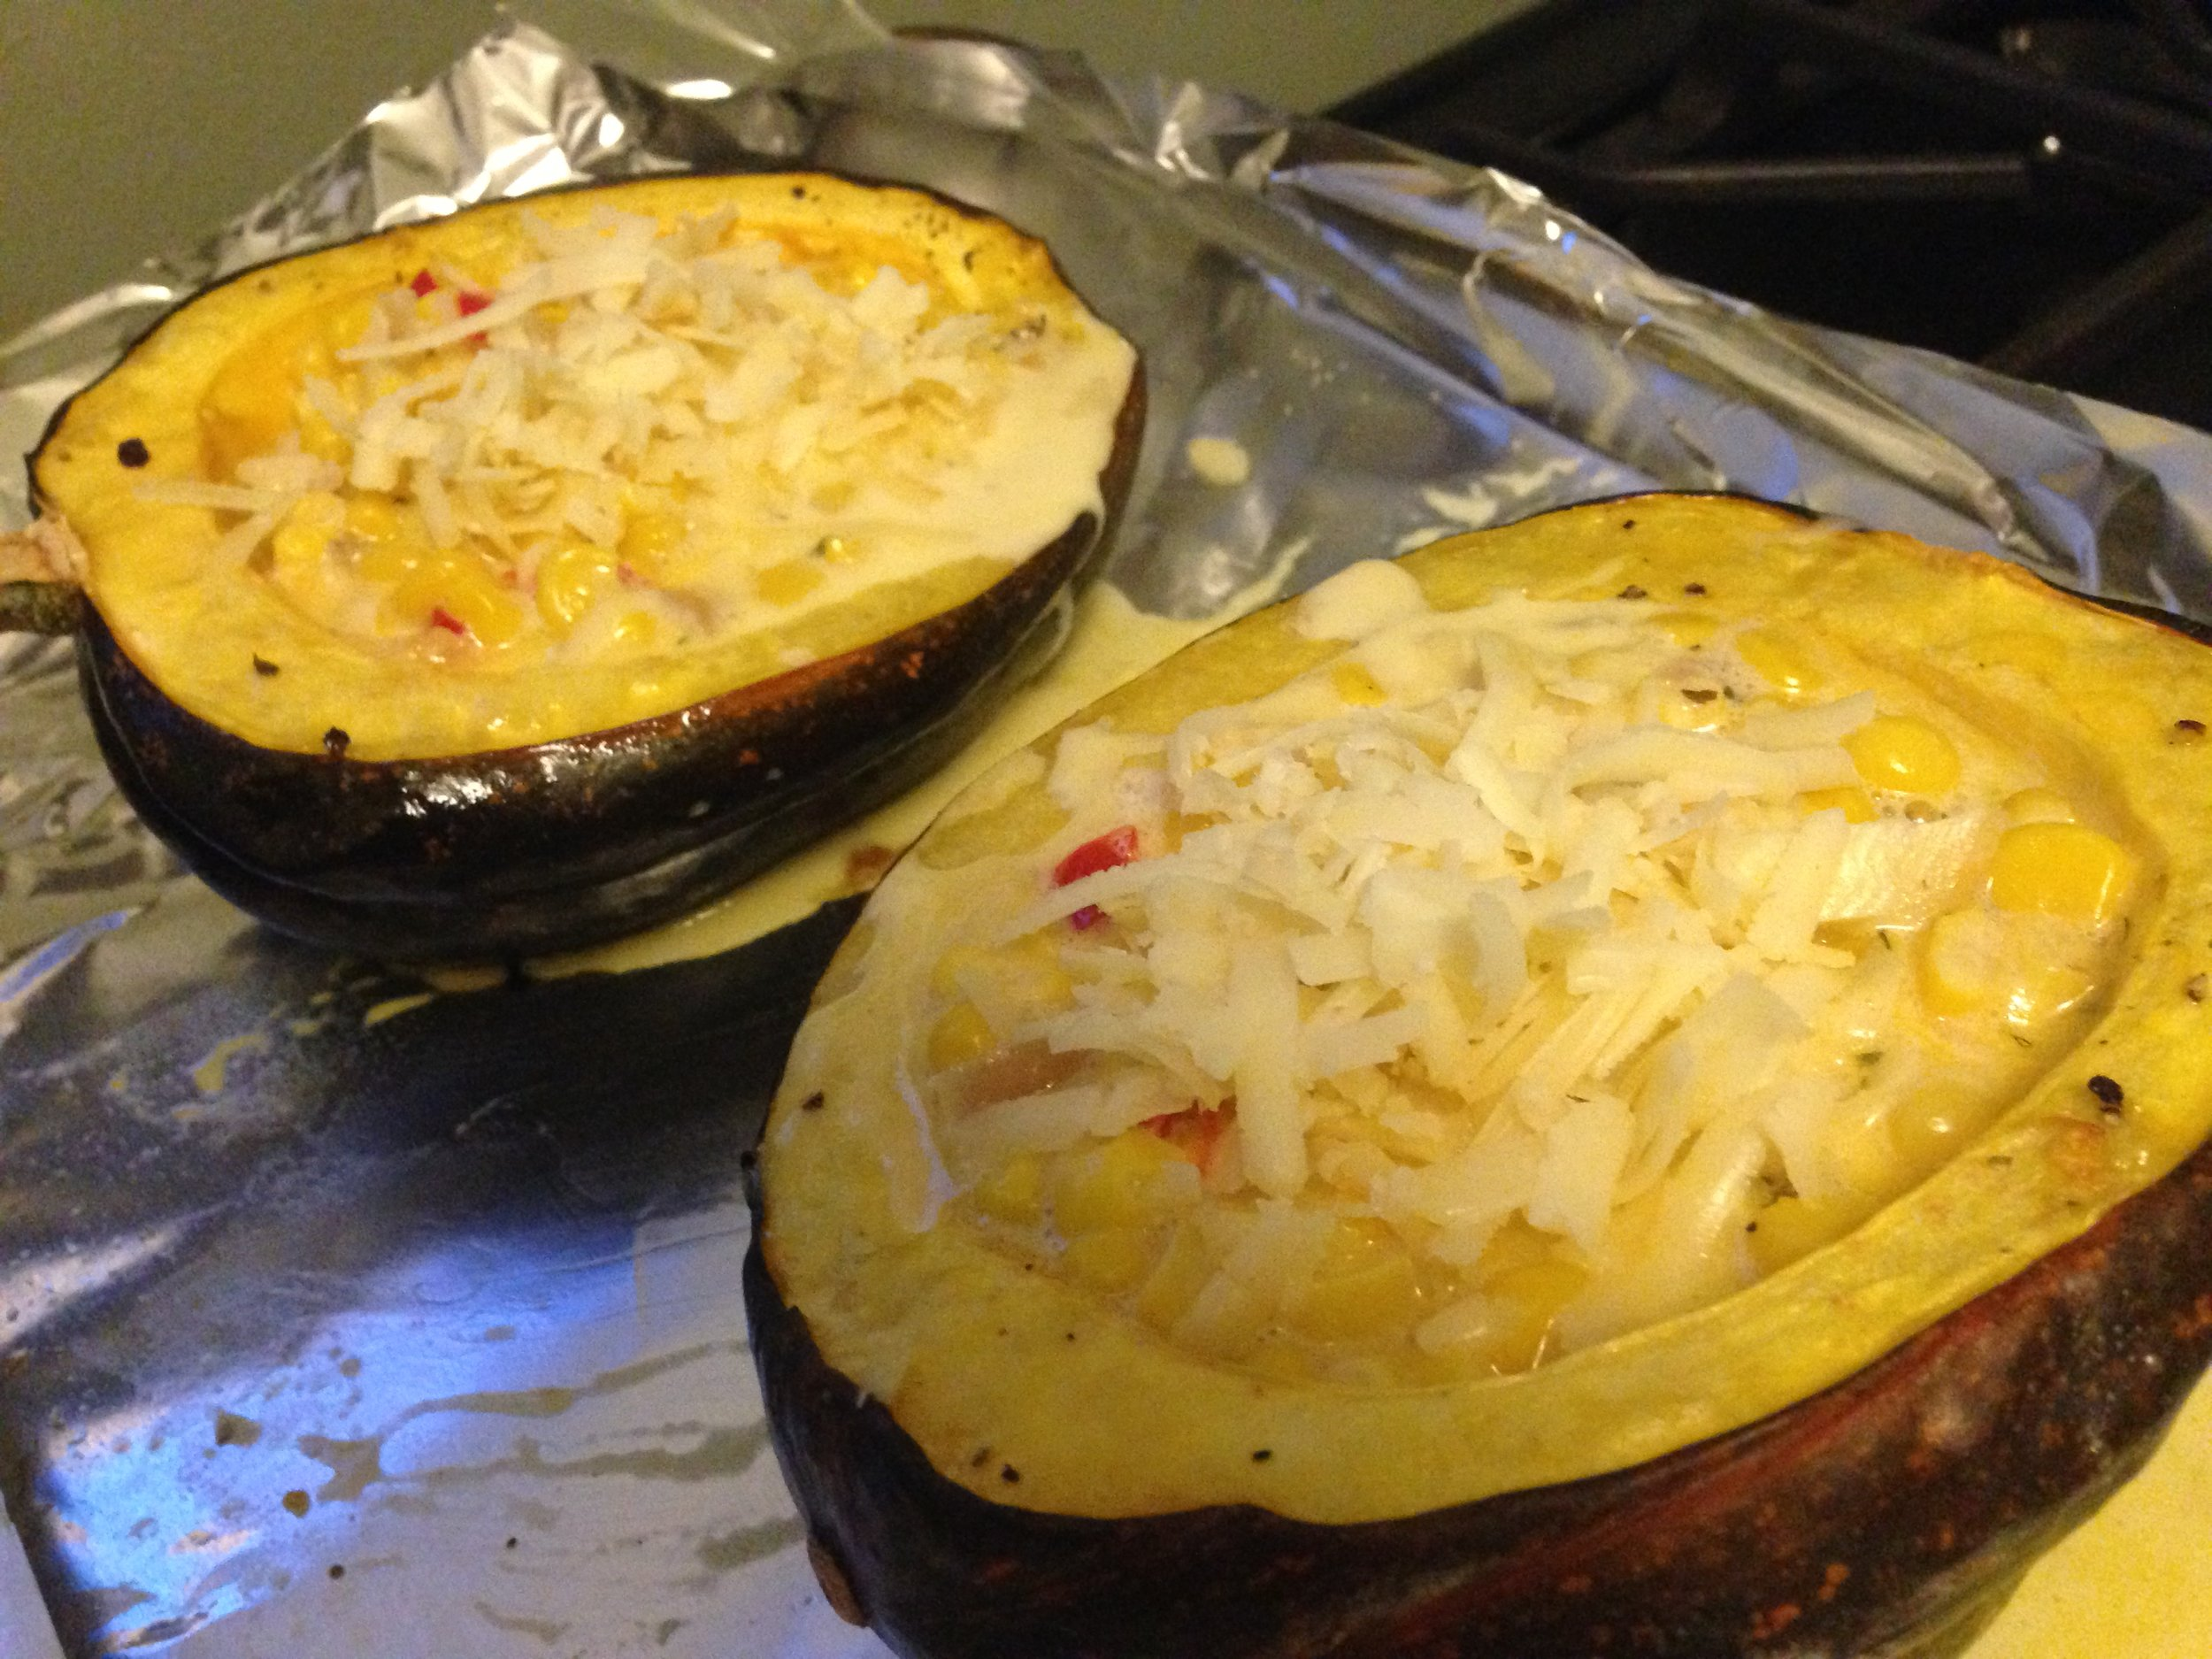 Stuffed squash ready for the oven.